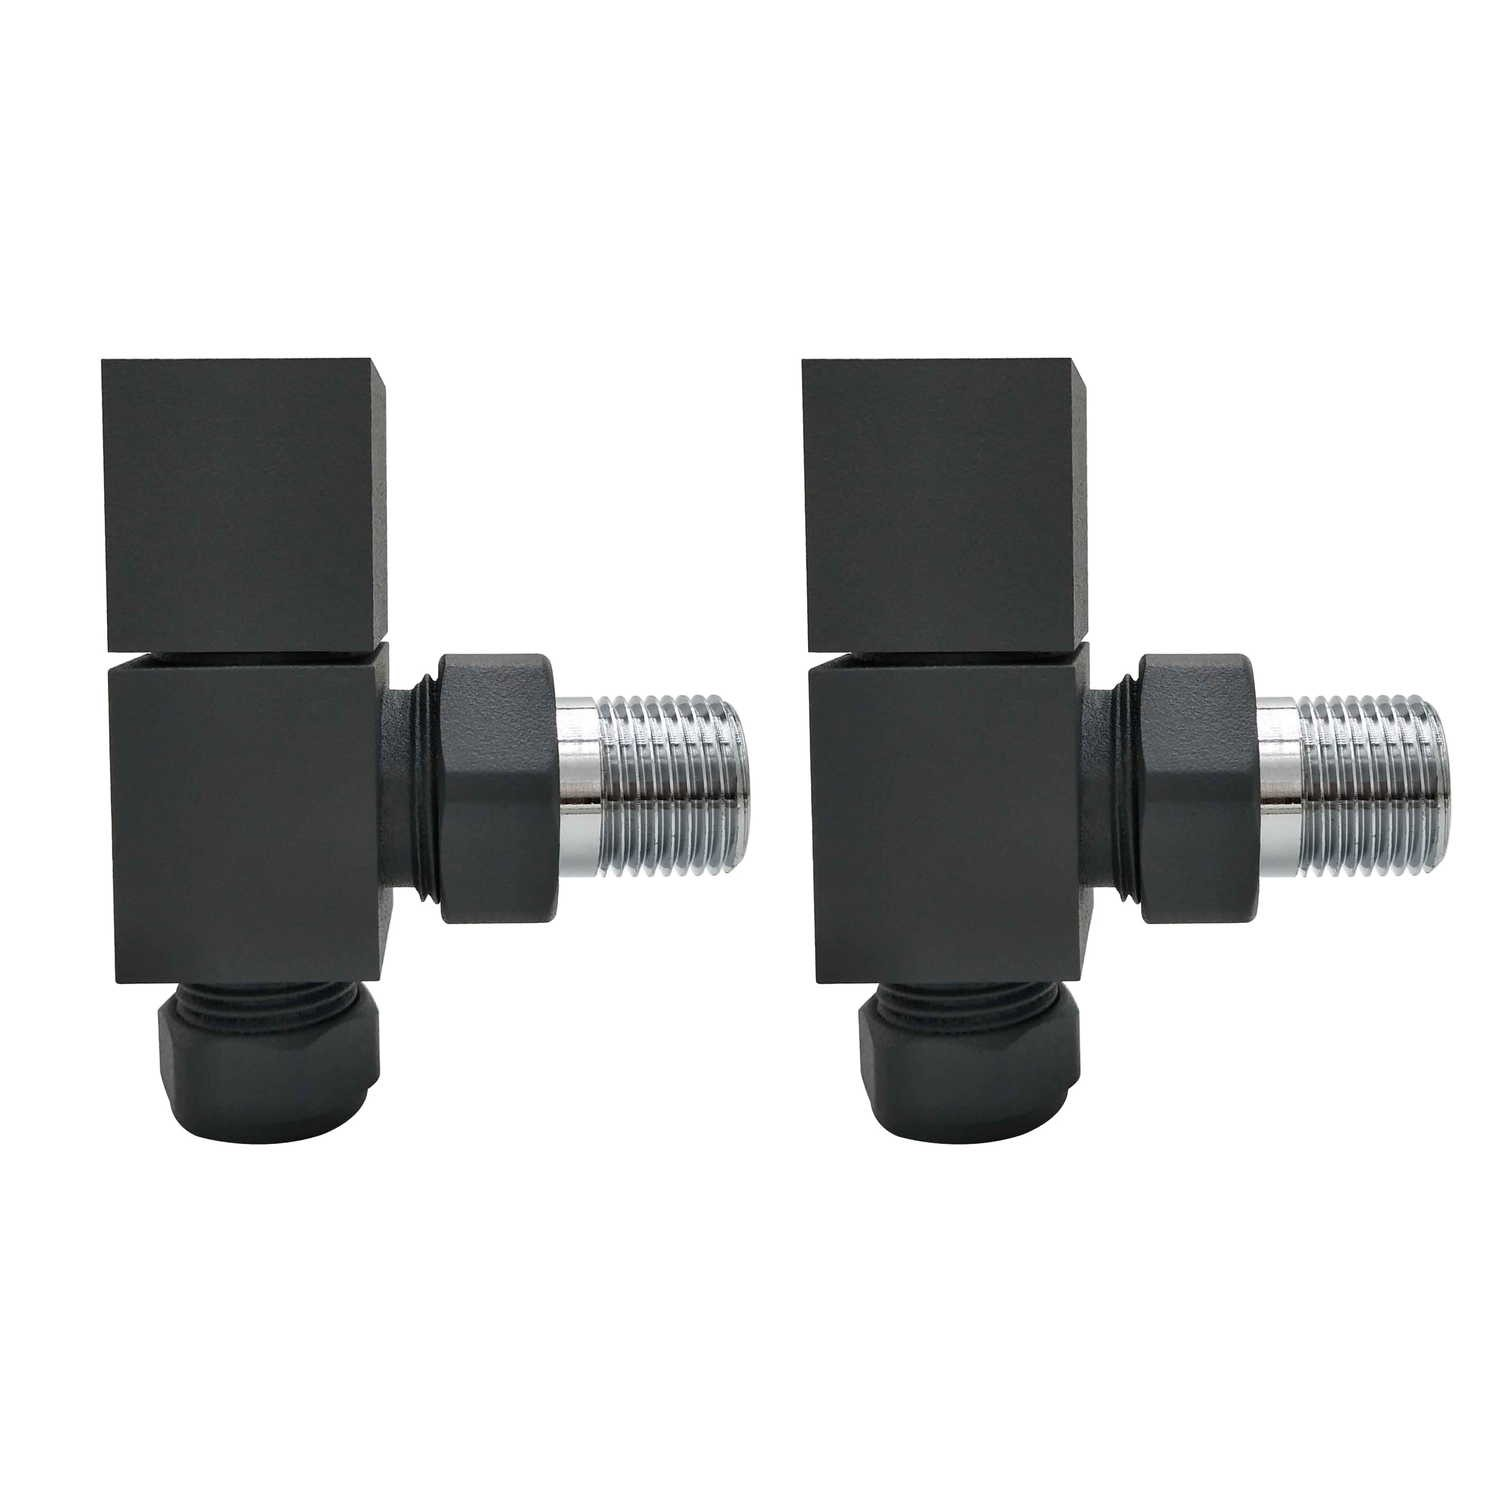 Anthracite Square Angled Radiator Valves For Pipework Which Comes From The Wall Furniture123